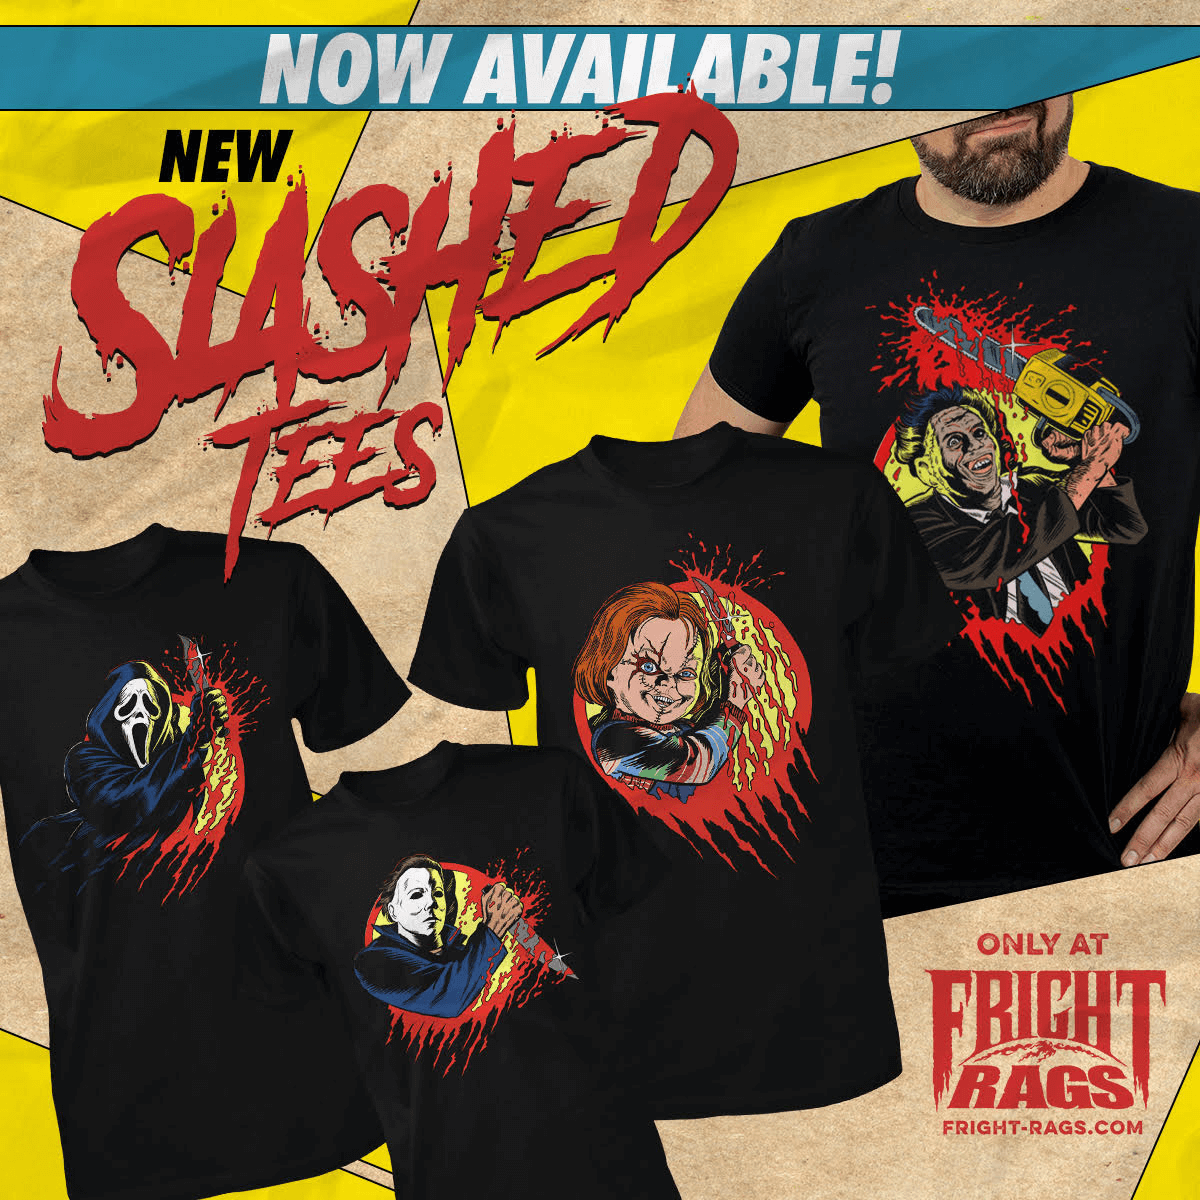 The Latest Collections from Fright-Rags Will Haunt You